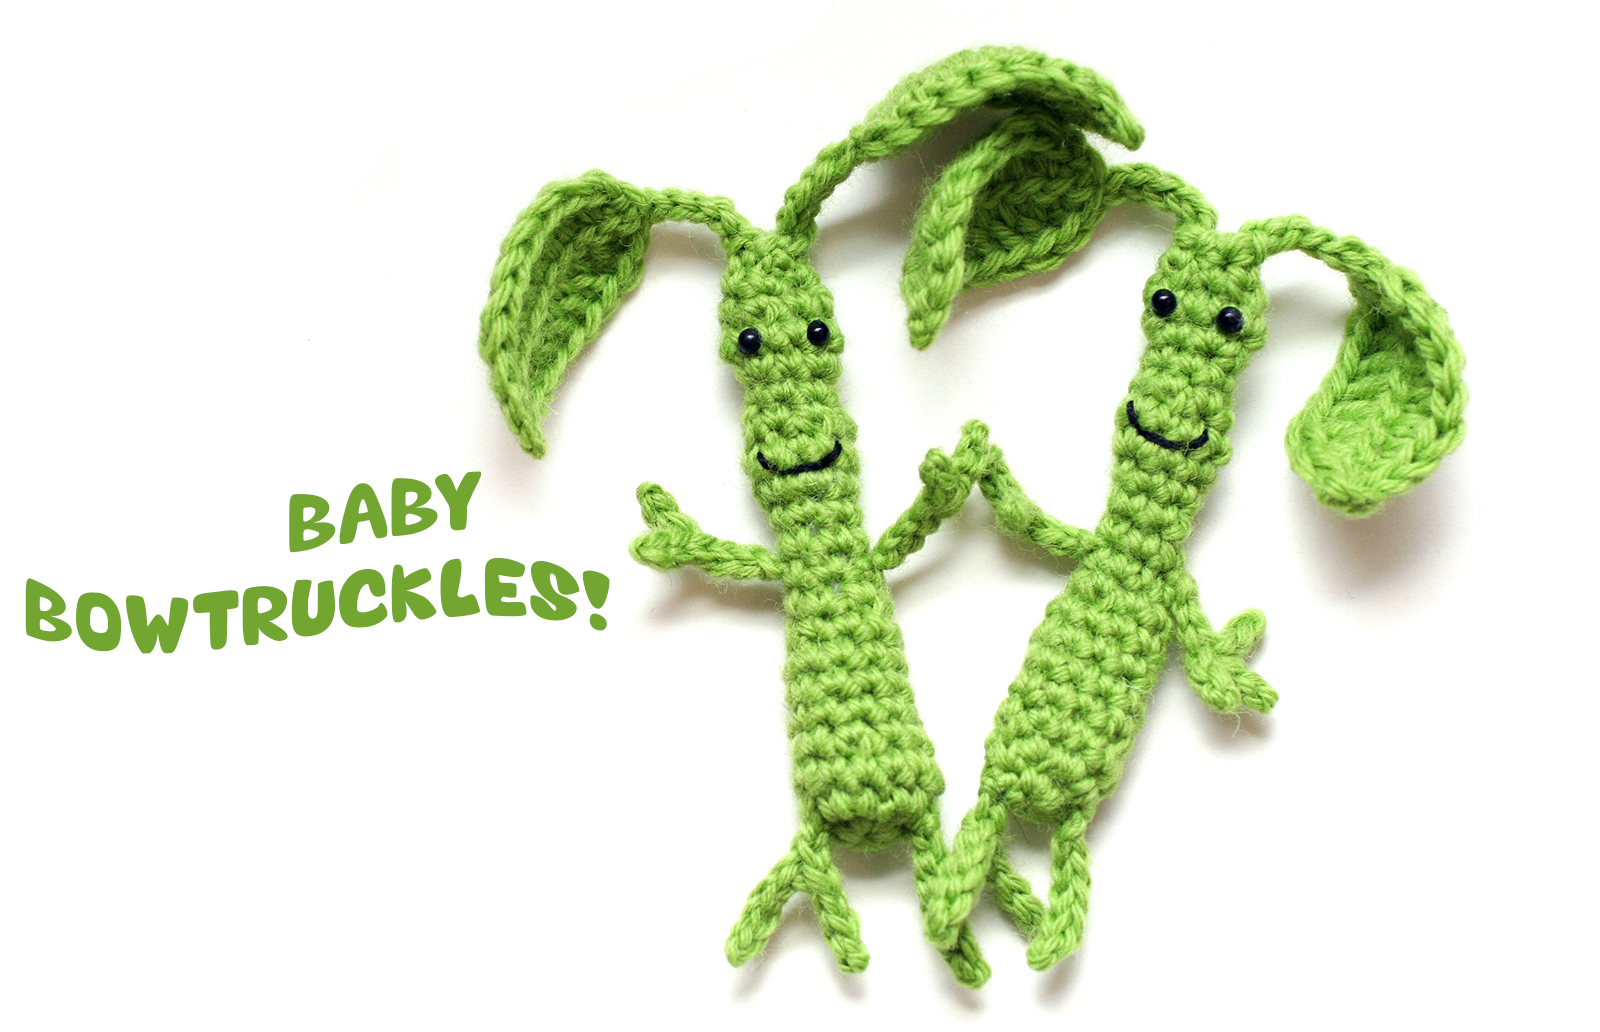 Free Crochet Pattern Baby Bowtruckle From Fantastic Beasts